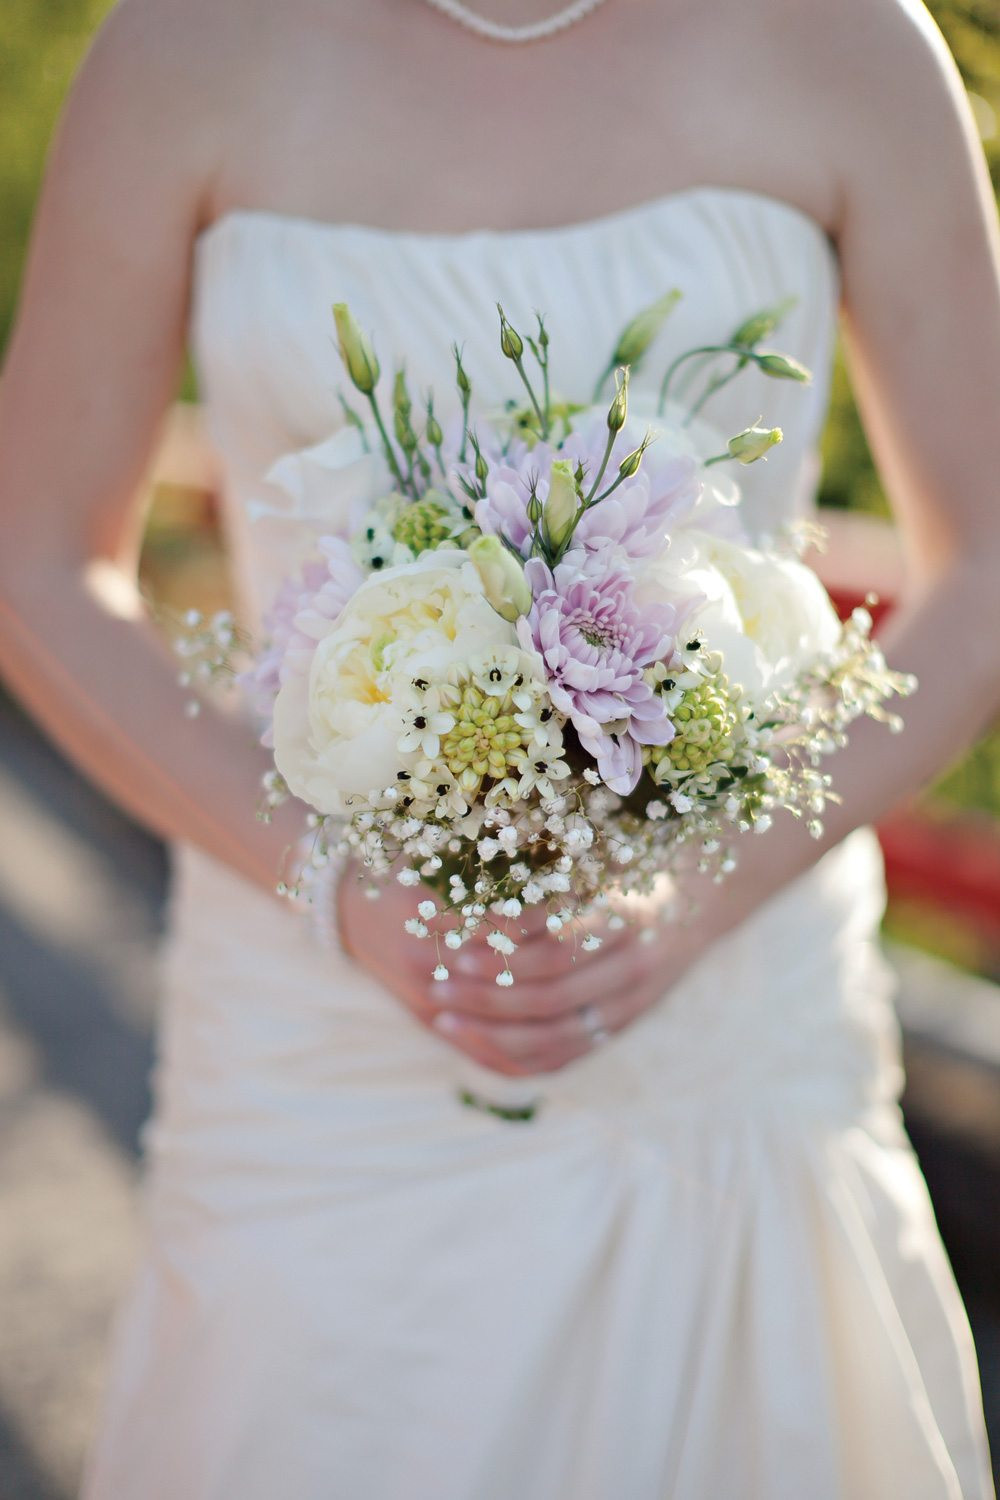 Best ideas about DIY Wedding Bouquet . Save or Pin A Personal DIY Wedding in Fort Langley British Columbia Now.